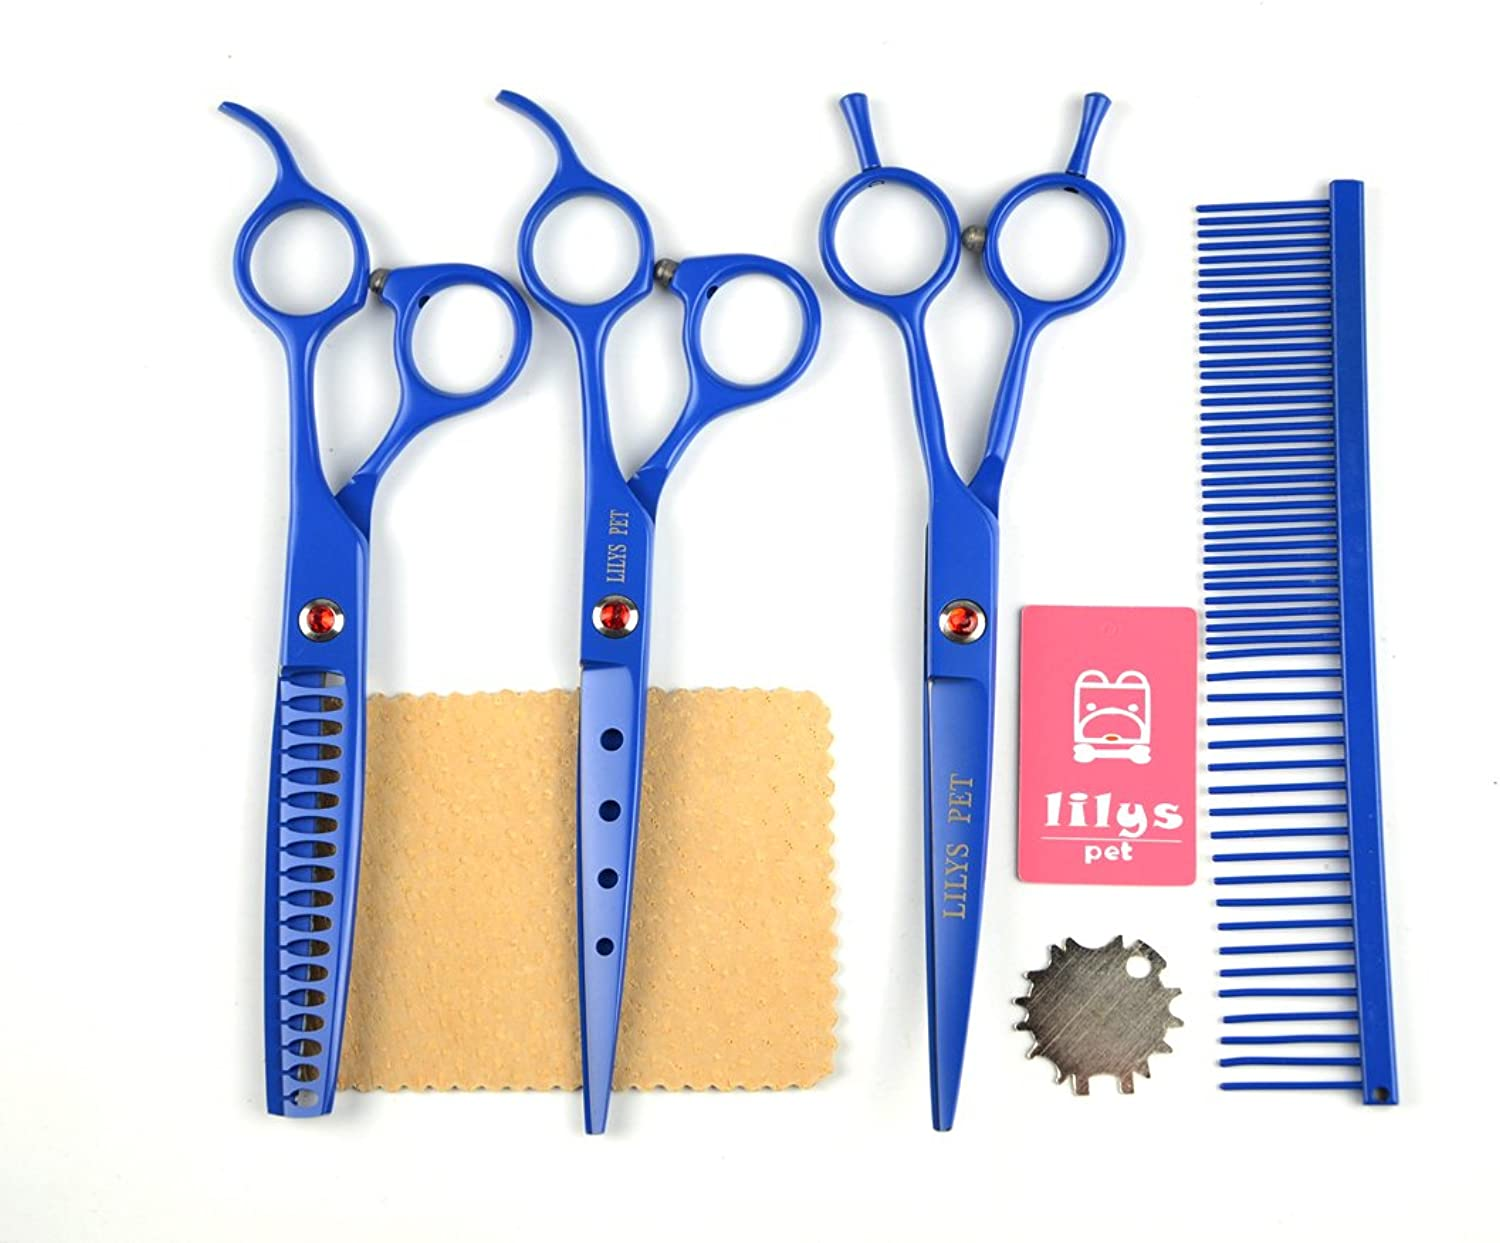 LILYS PET Professional PET Dog Grooming Scissors Cutting&Curved&Thinning Shears,Round Hole Design, Shark Teeth Thinning Scissor (7 , bluee)